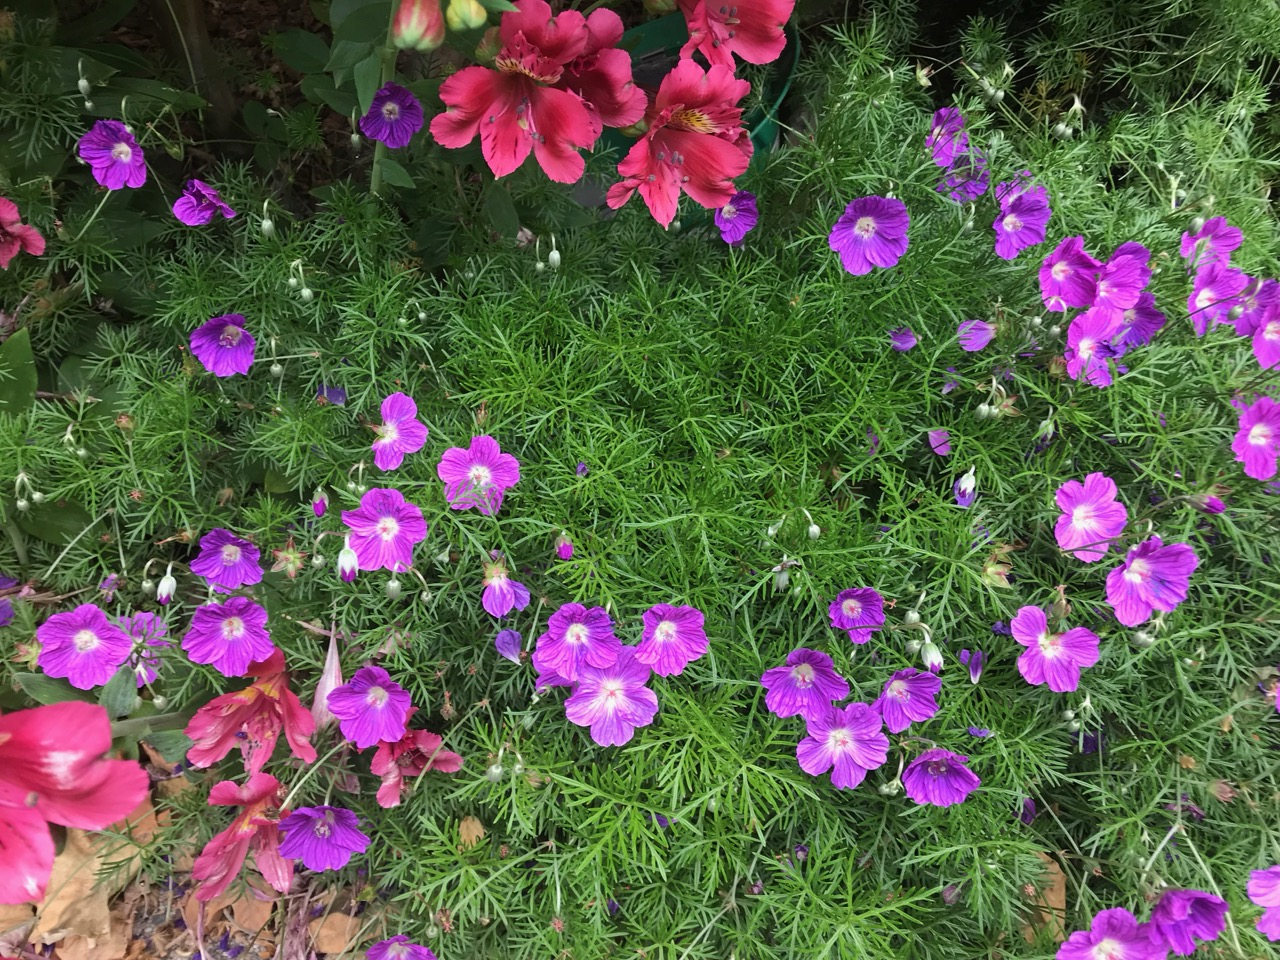 pink-and-red-flowers.jpg